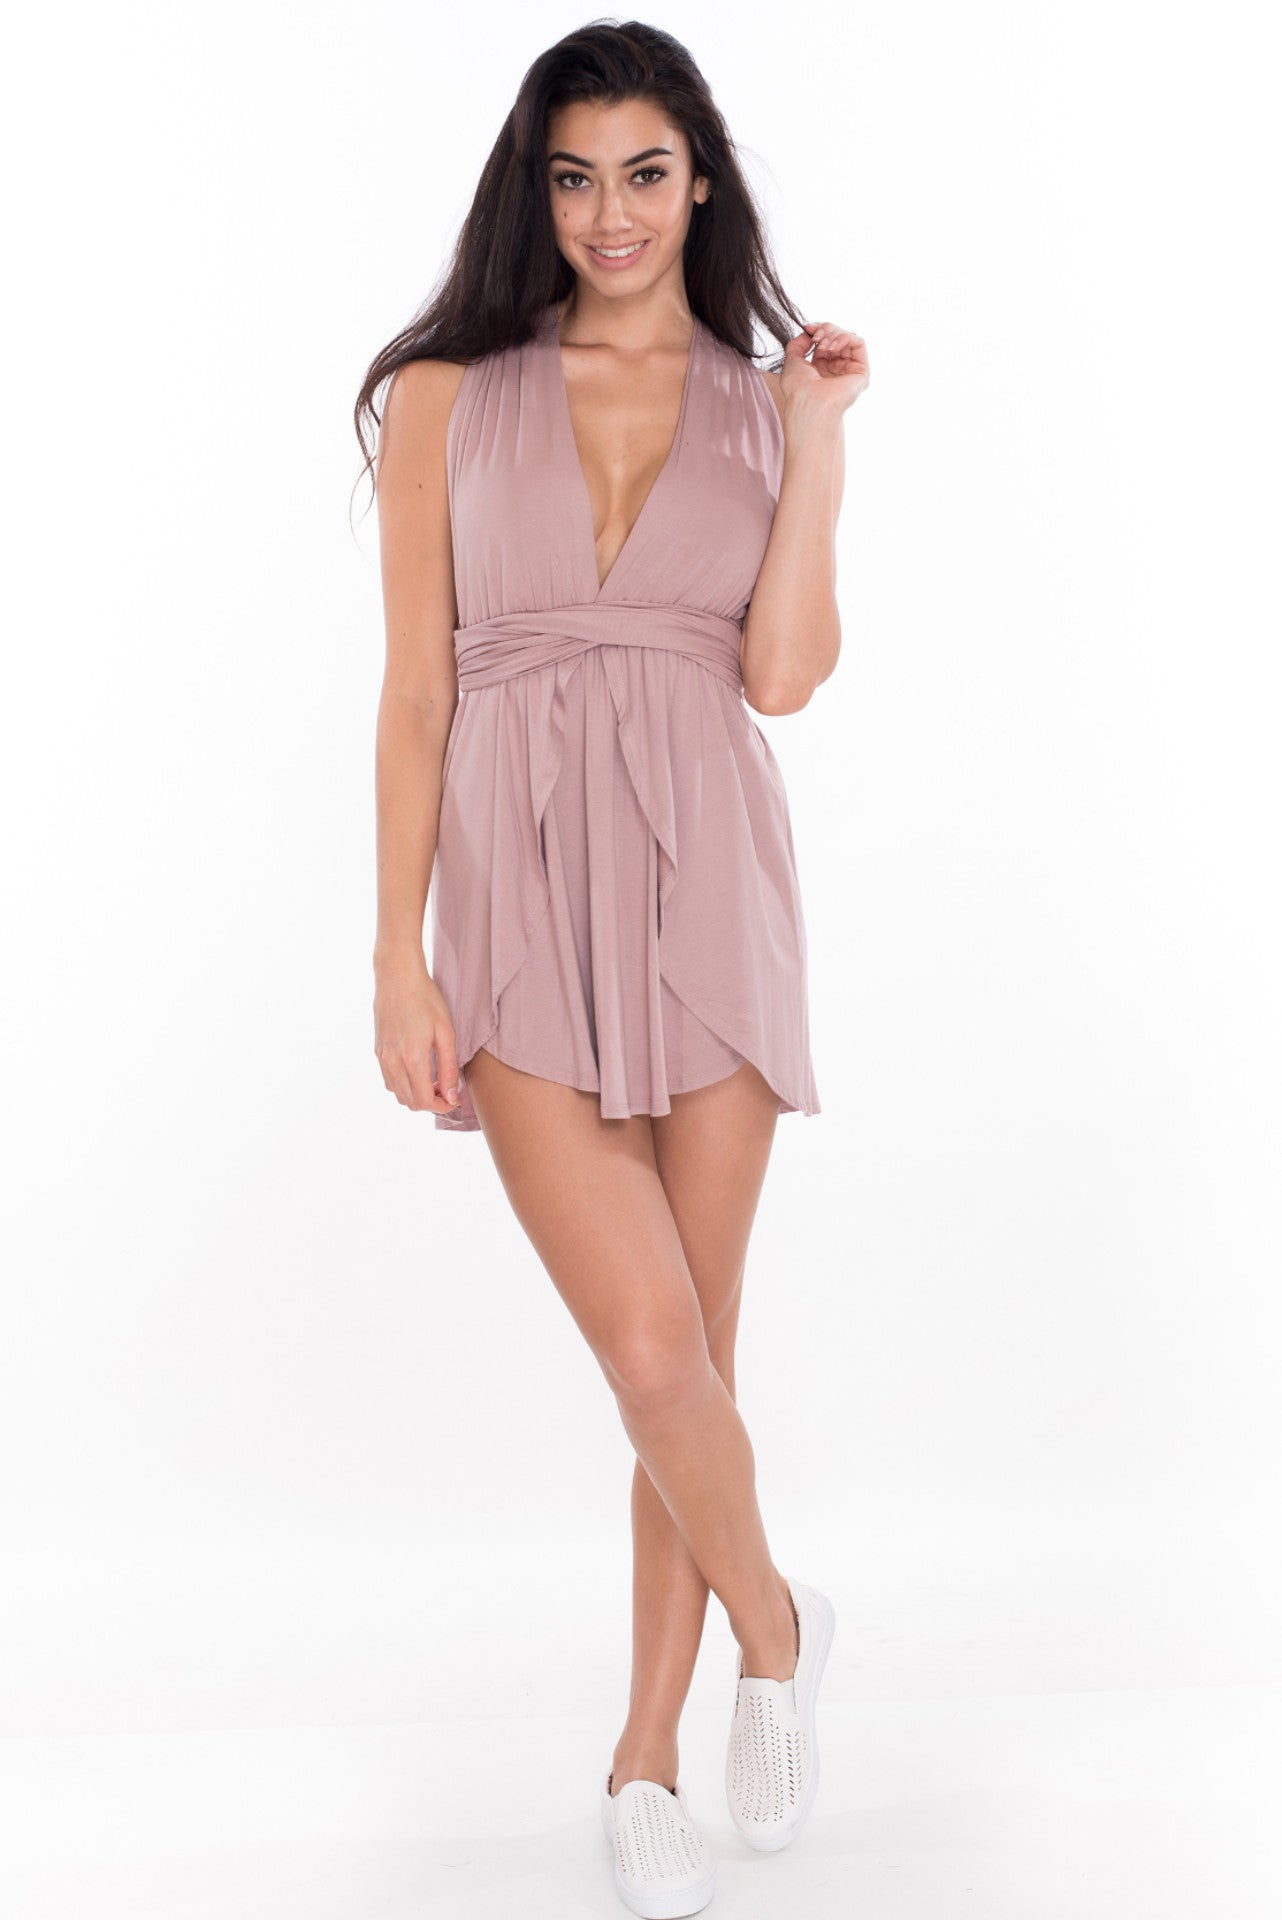 Power of Love Dress - Mauve